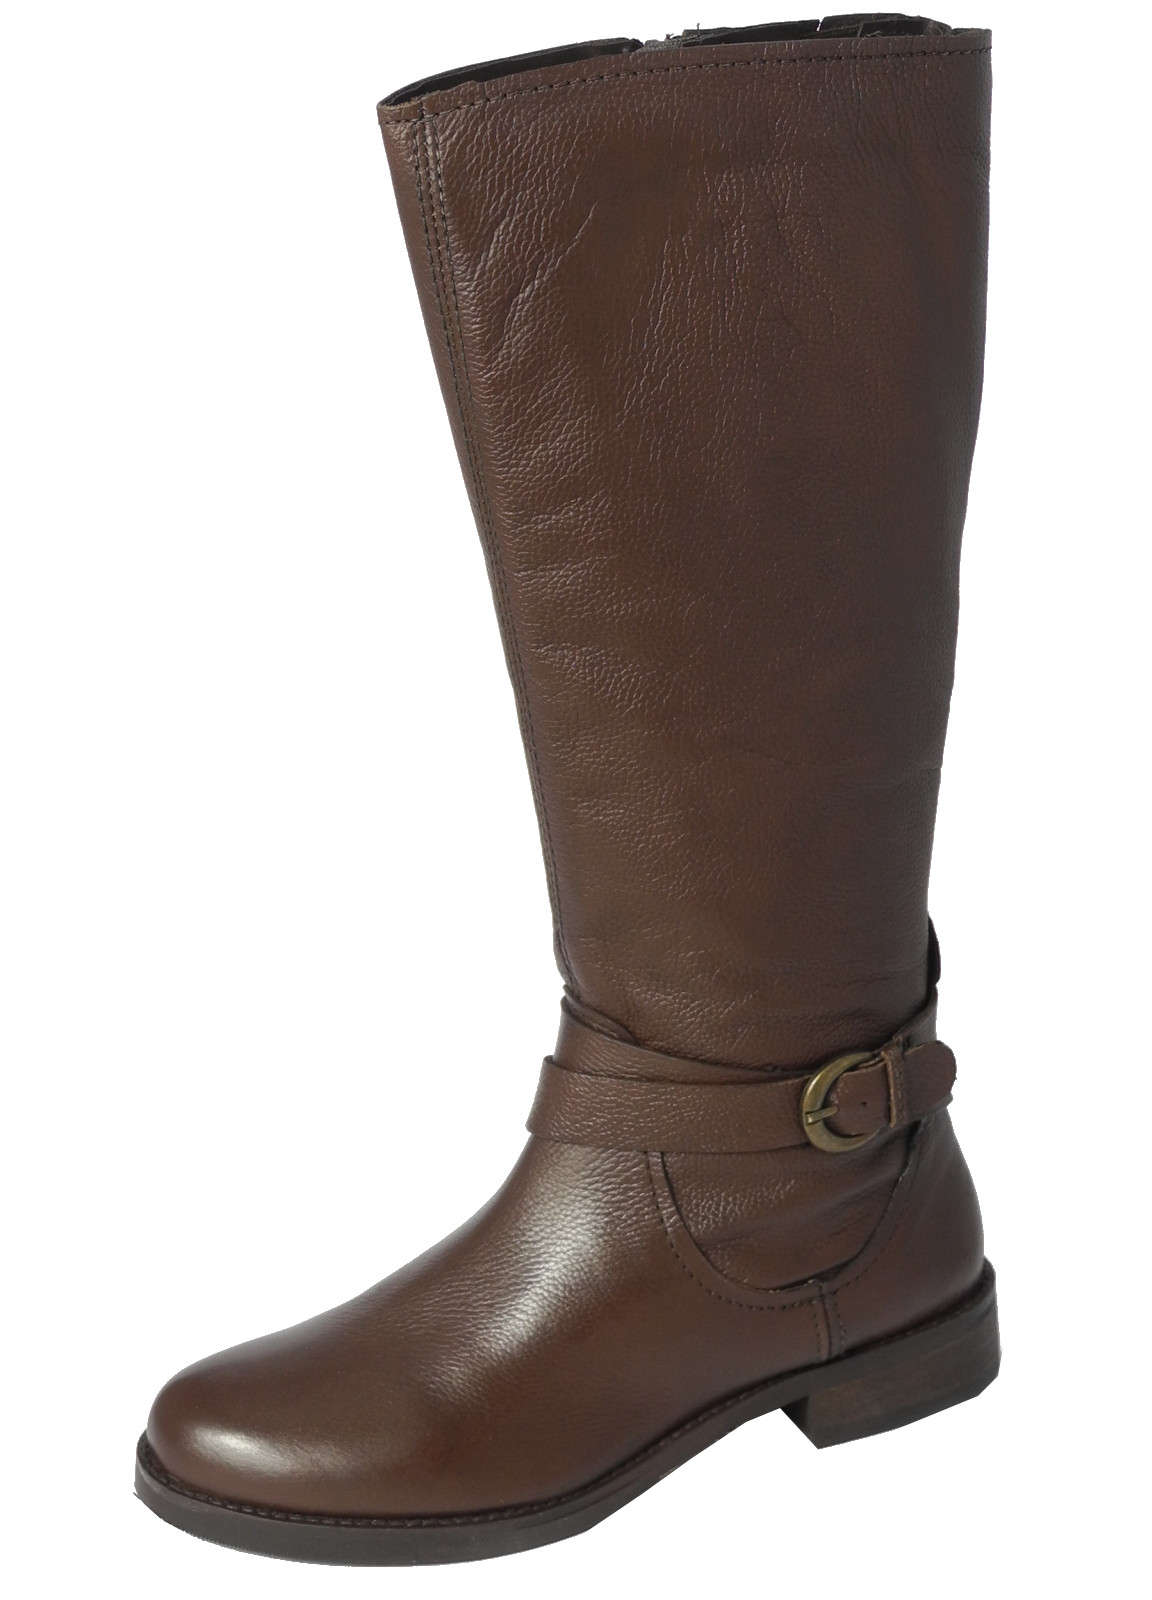 Simple WOMENS BROWN FAUX LEATHER LADIES WINTER KNEE HIGH RIDING BOOTS SHOES